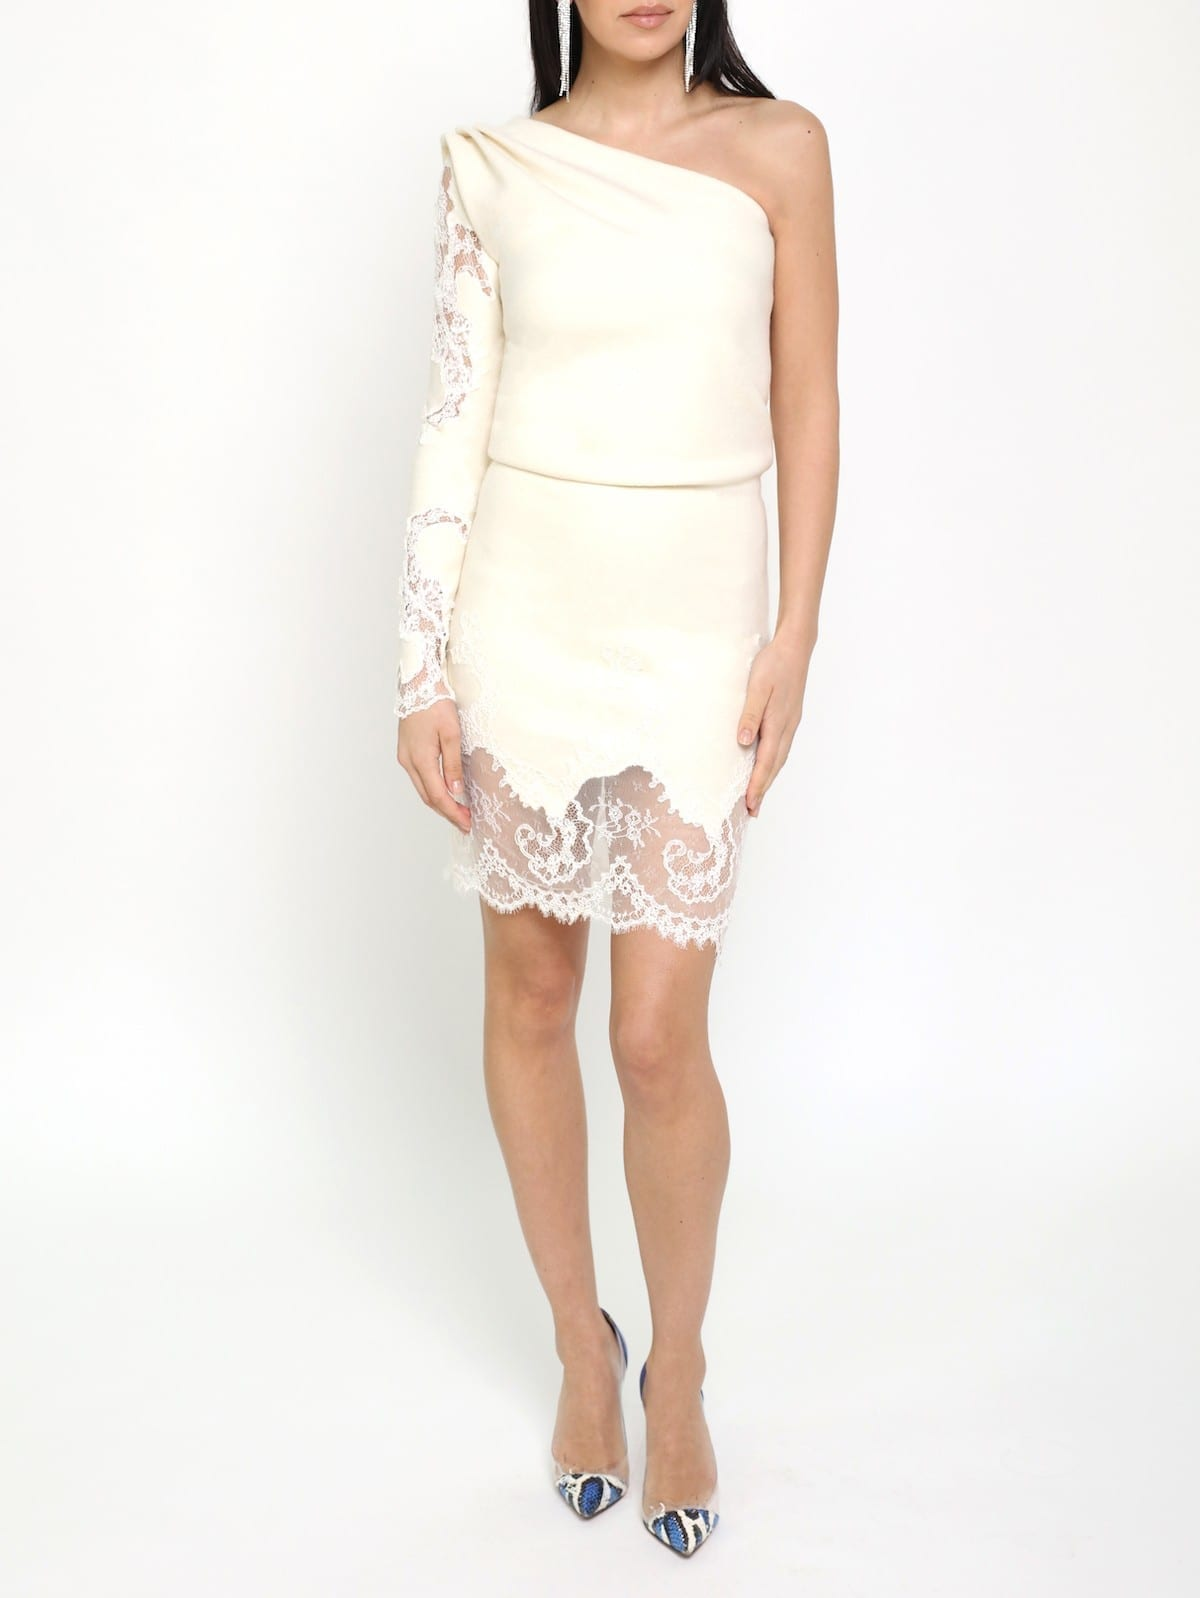 SAFIRO White Coral Lace Dress